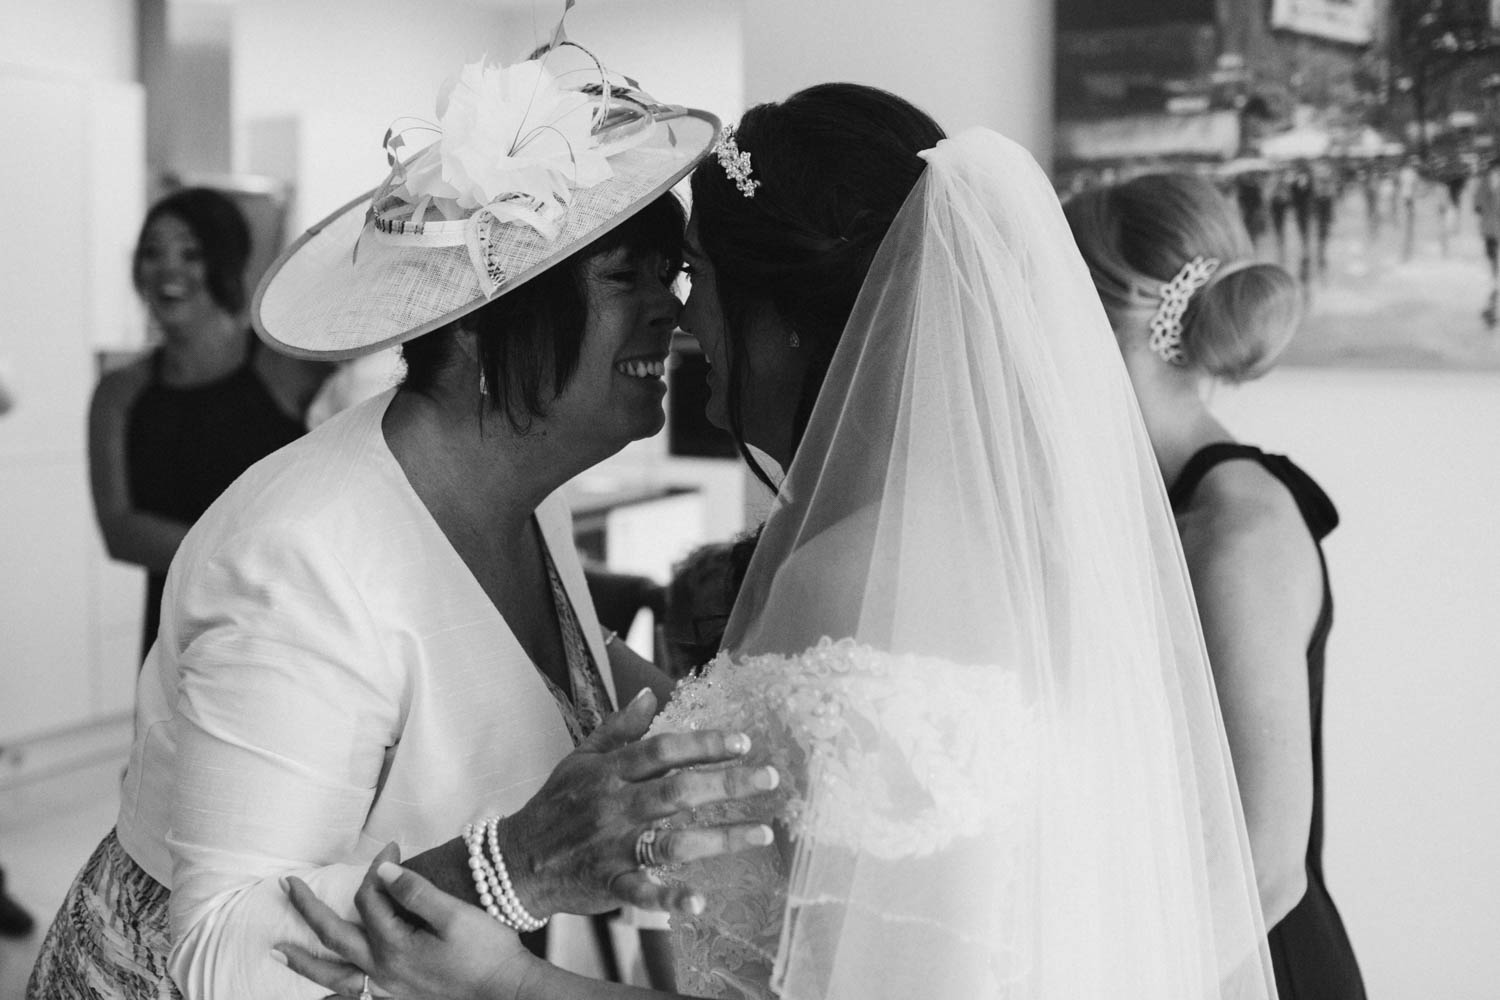 mum and bride rubbing noses together